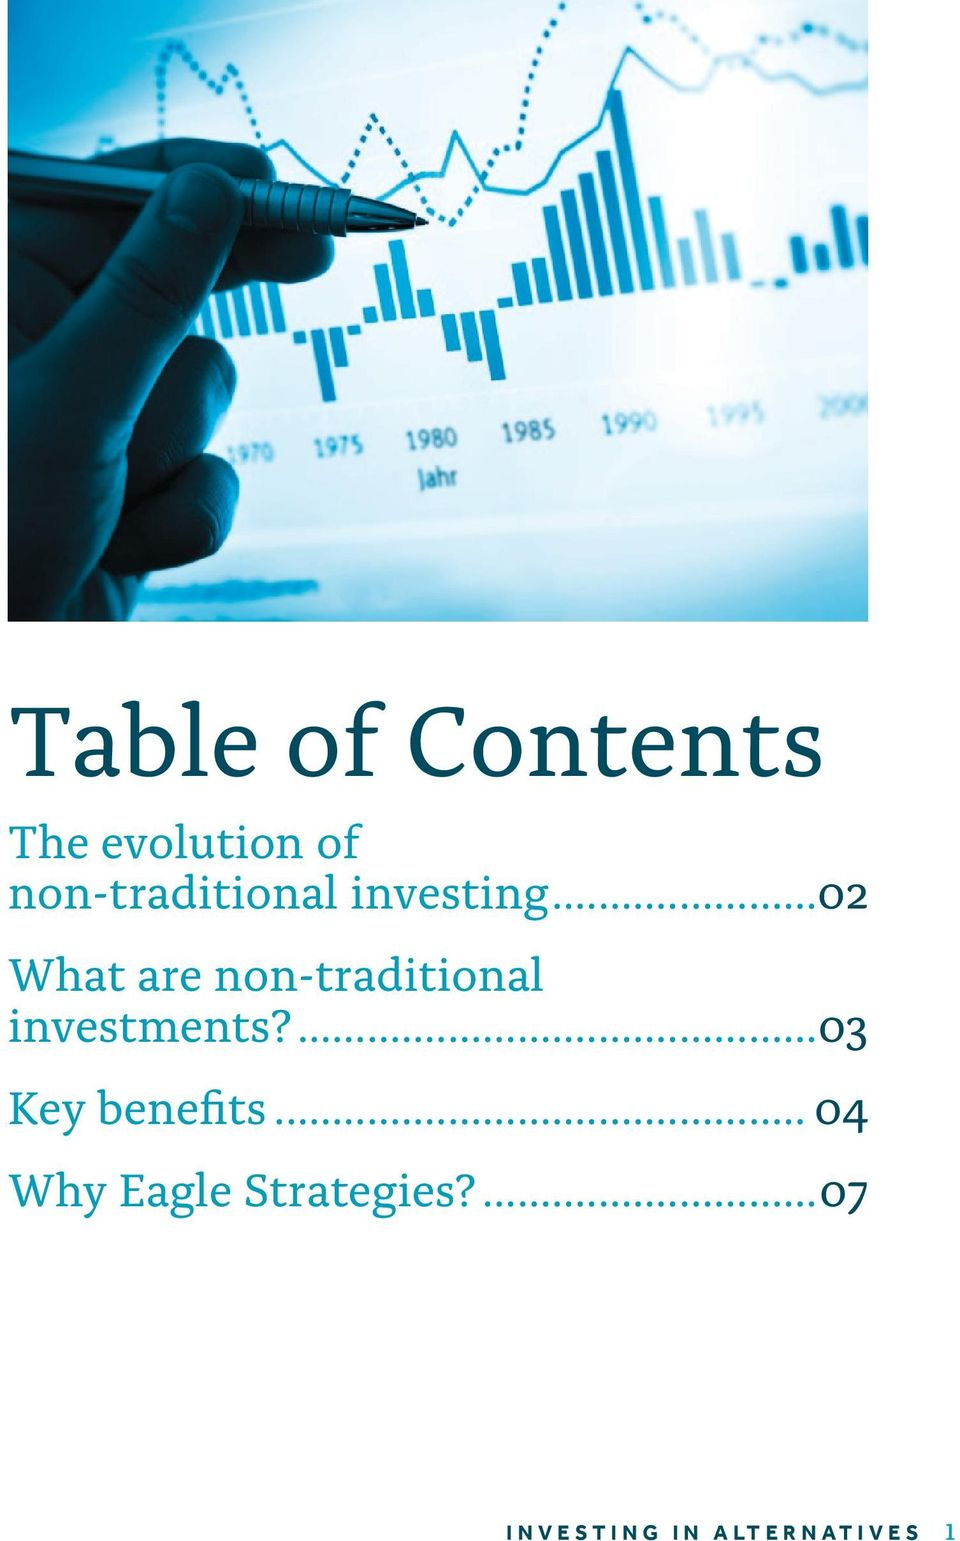 ..02 What are non-traditional investments?